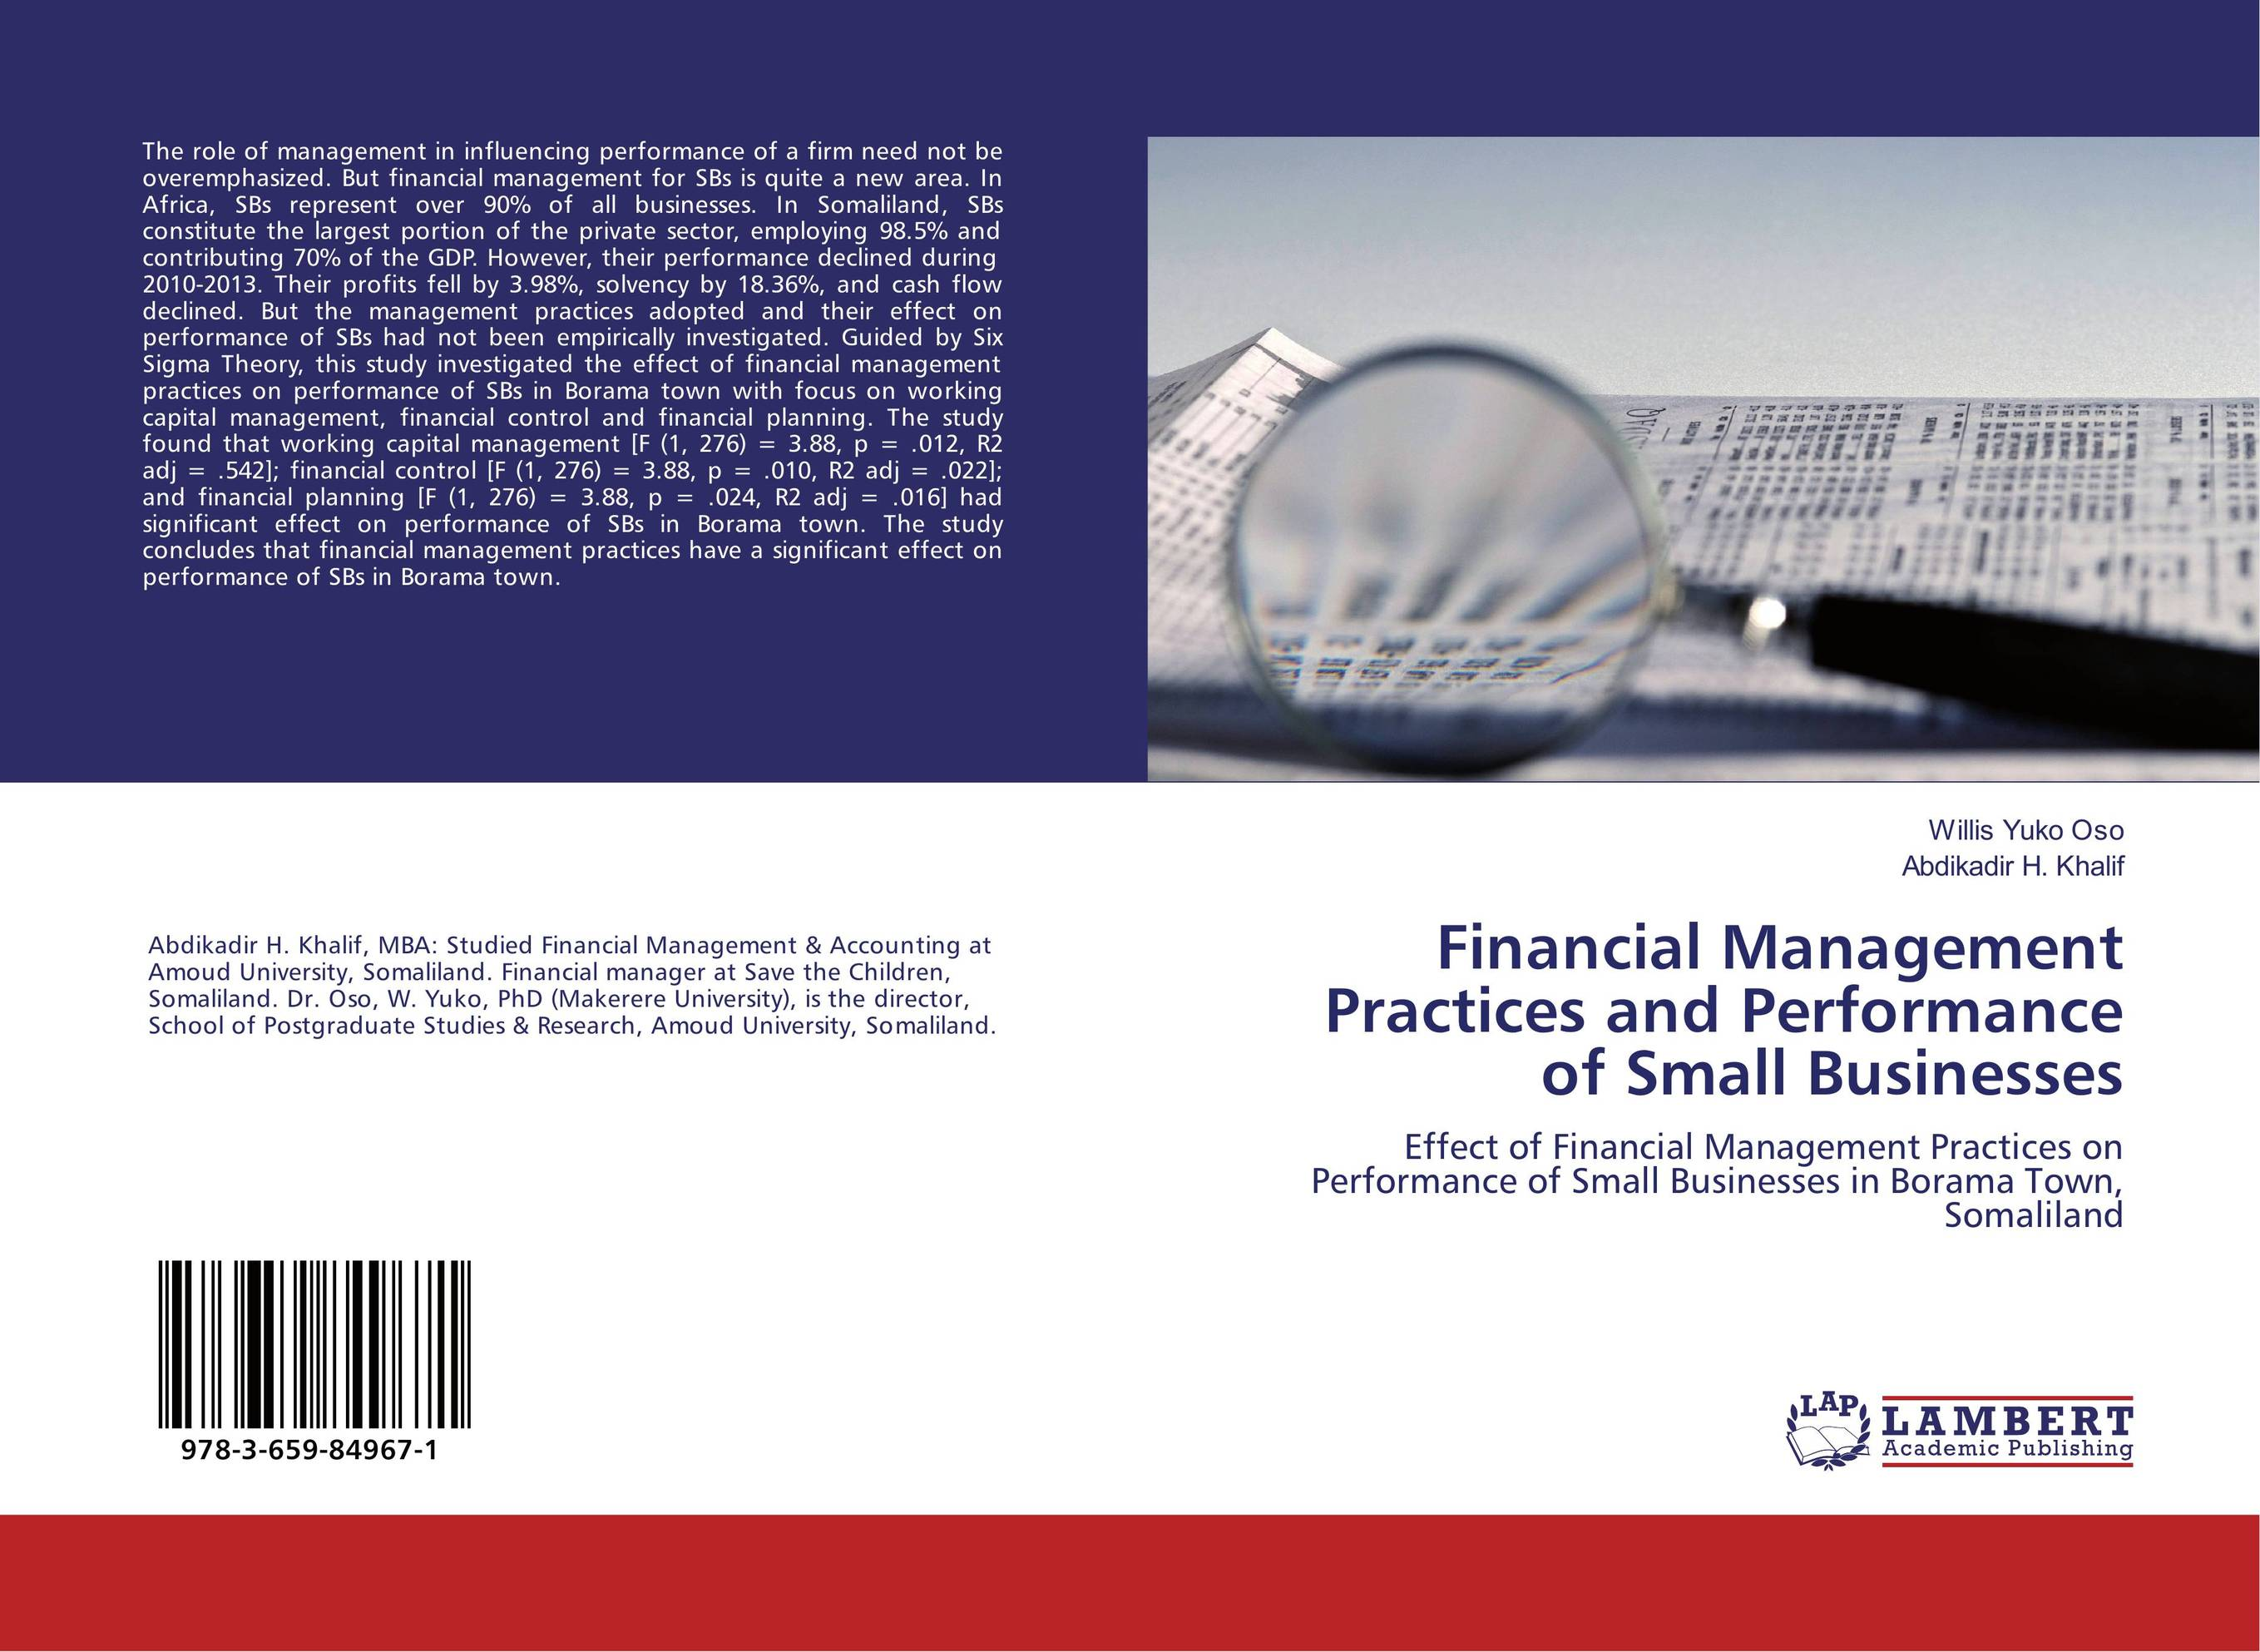 Financial Management Practices and Performance of Small Businesses